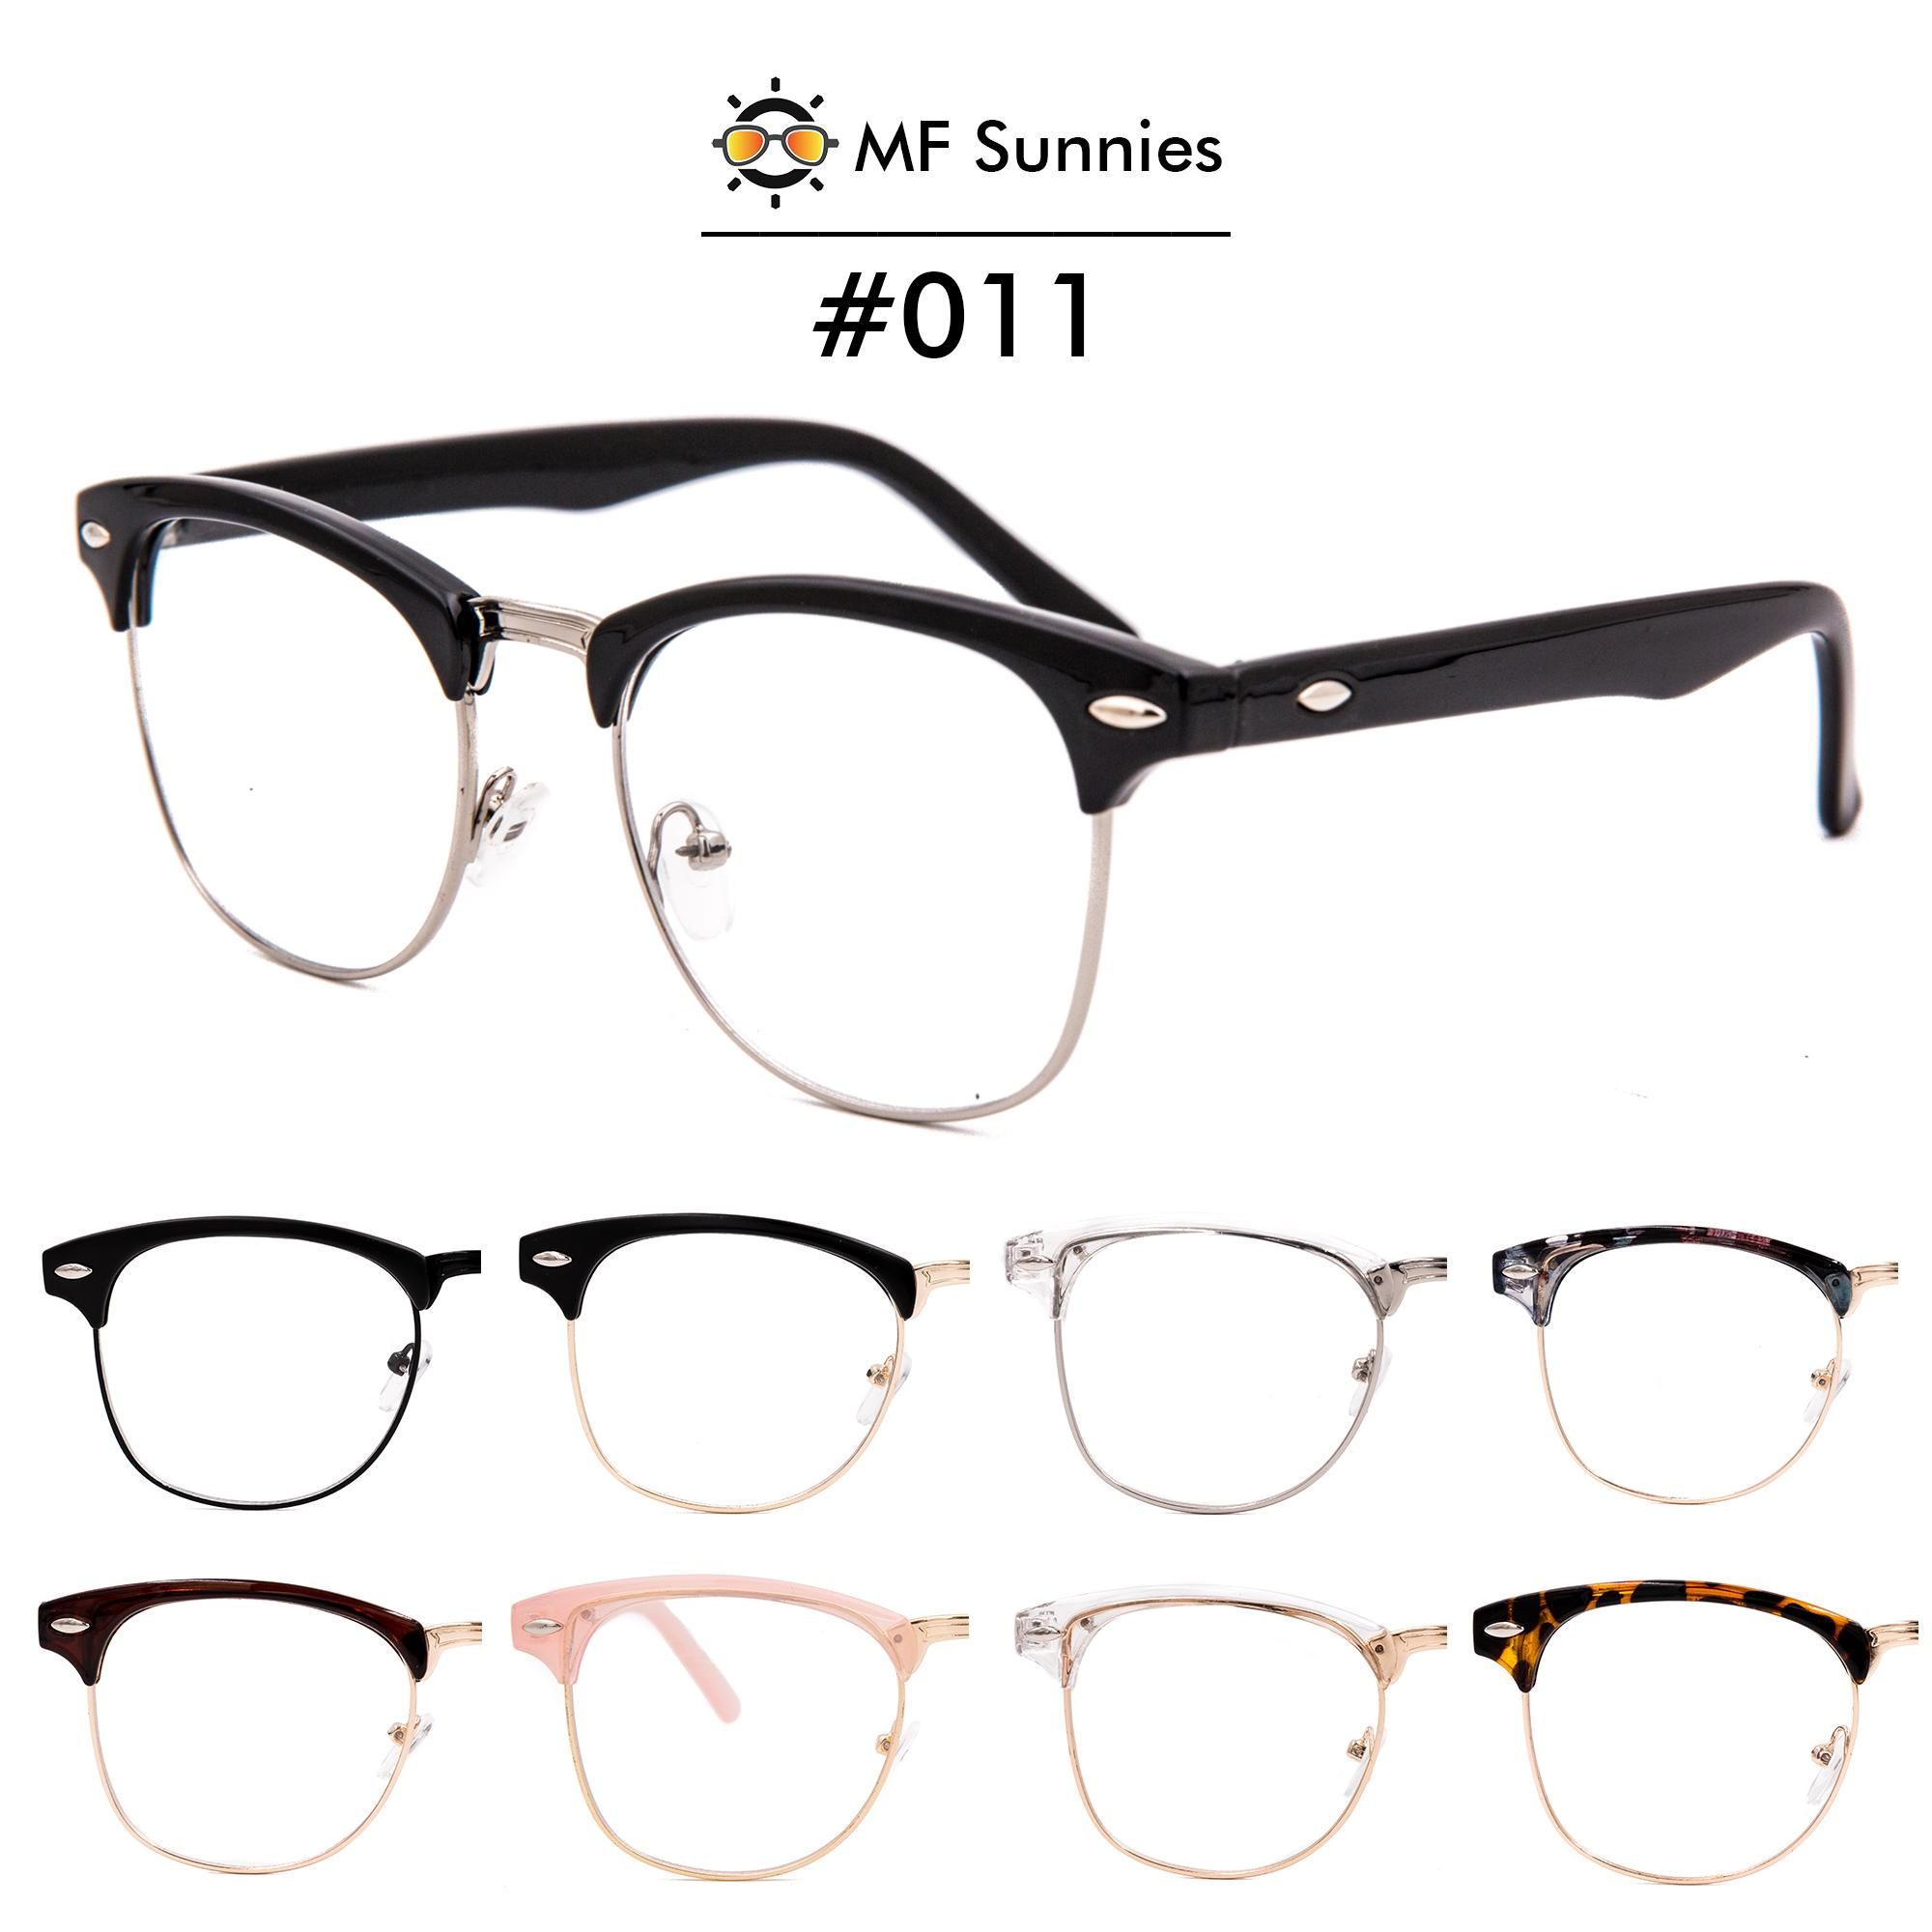 d36f999d43 277643 items found in Eyewear. MFSunnies Clubmaster Computer Anti  Radiation Blue light Classic Metal Hinges High quality acetate frame